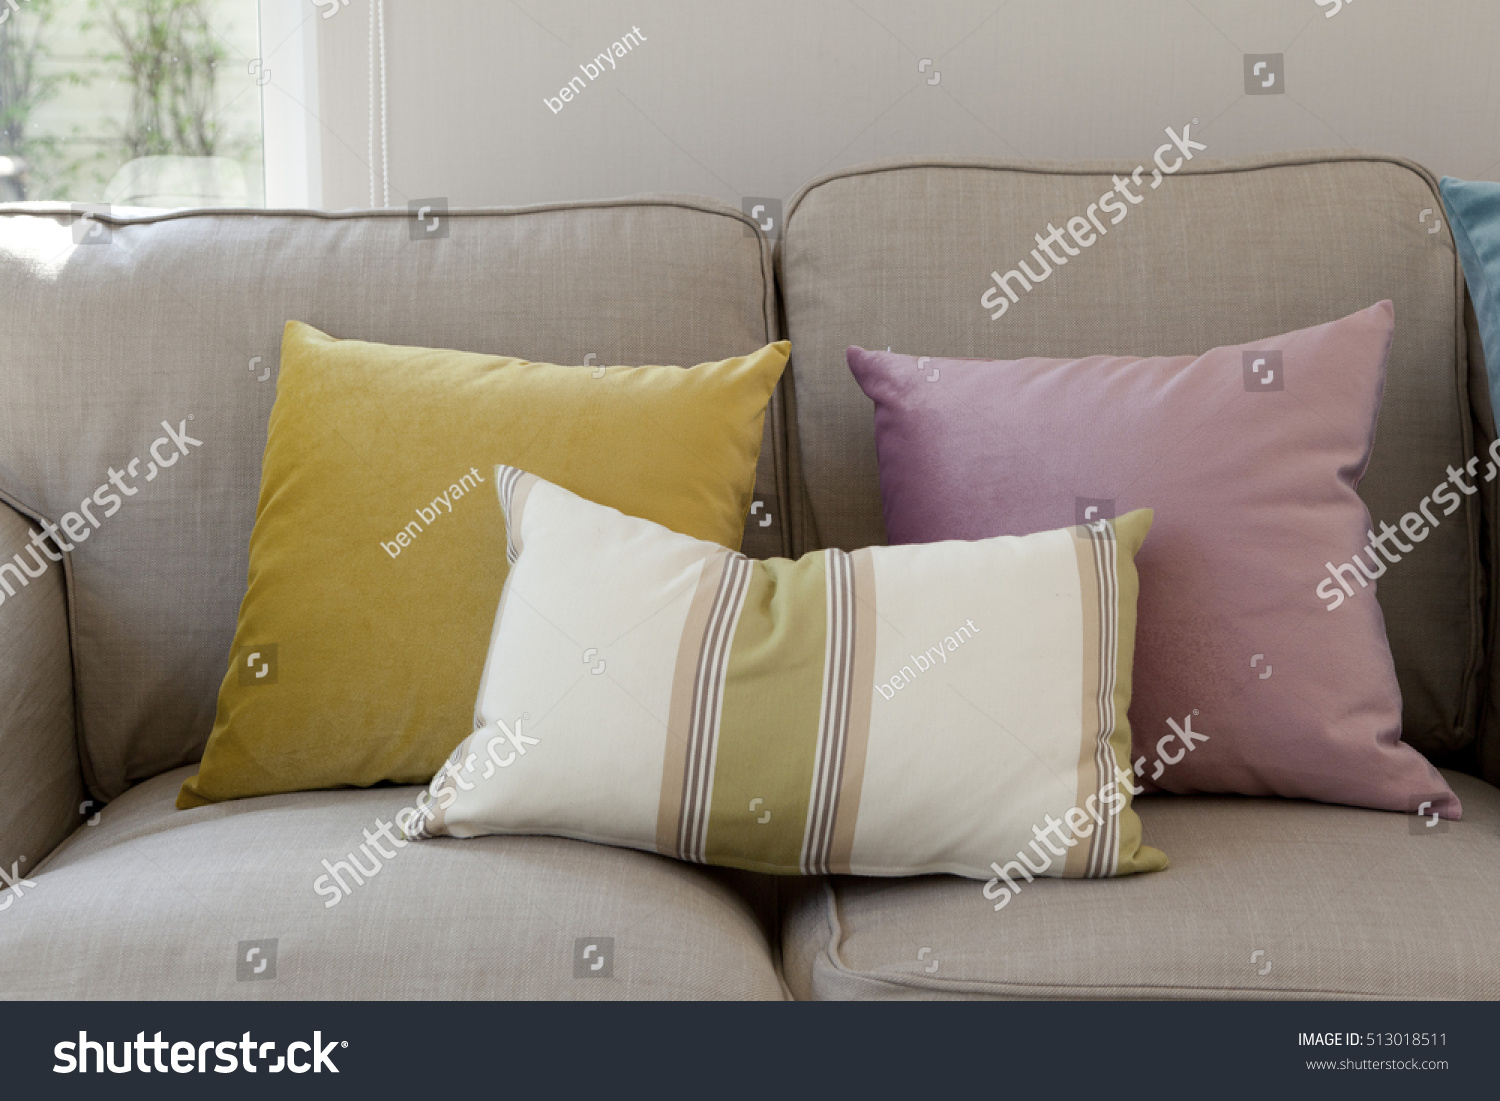 Colorful Pillows On Couch Stock Photo 513018511 - Shutterstock